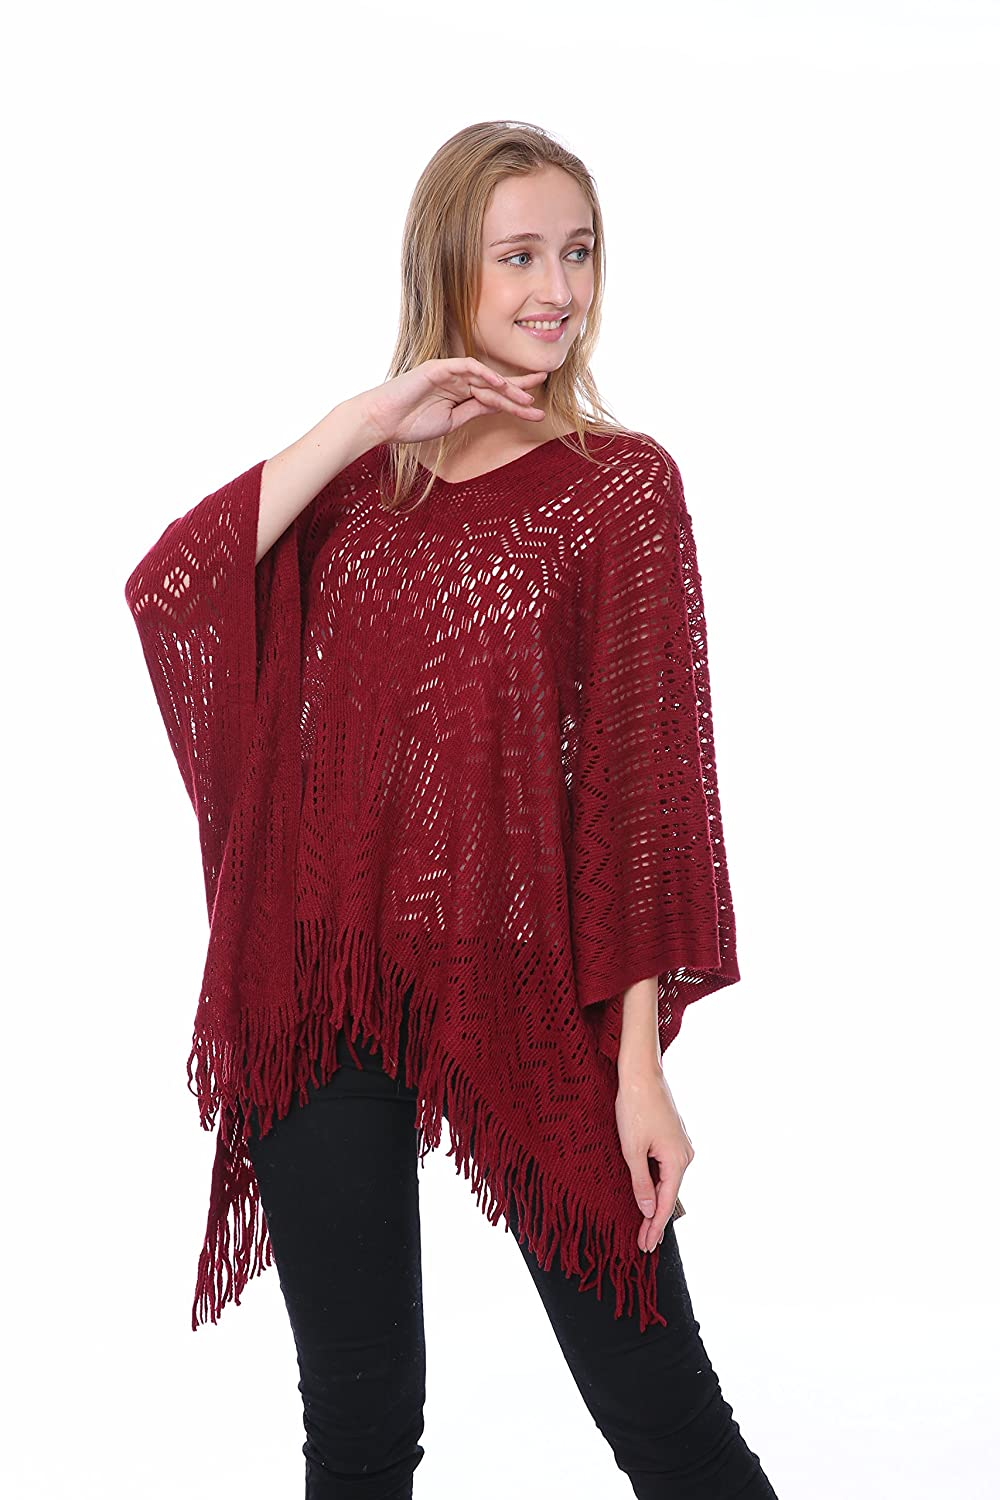 Memories RED Knitting Crochet Poncho(QH-272-3-03) QH-272-3-03 RED